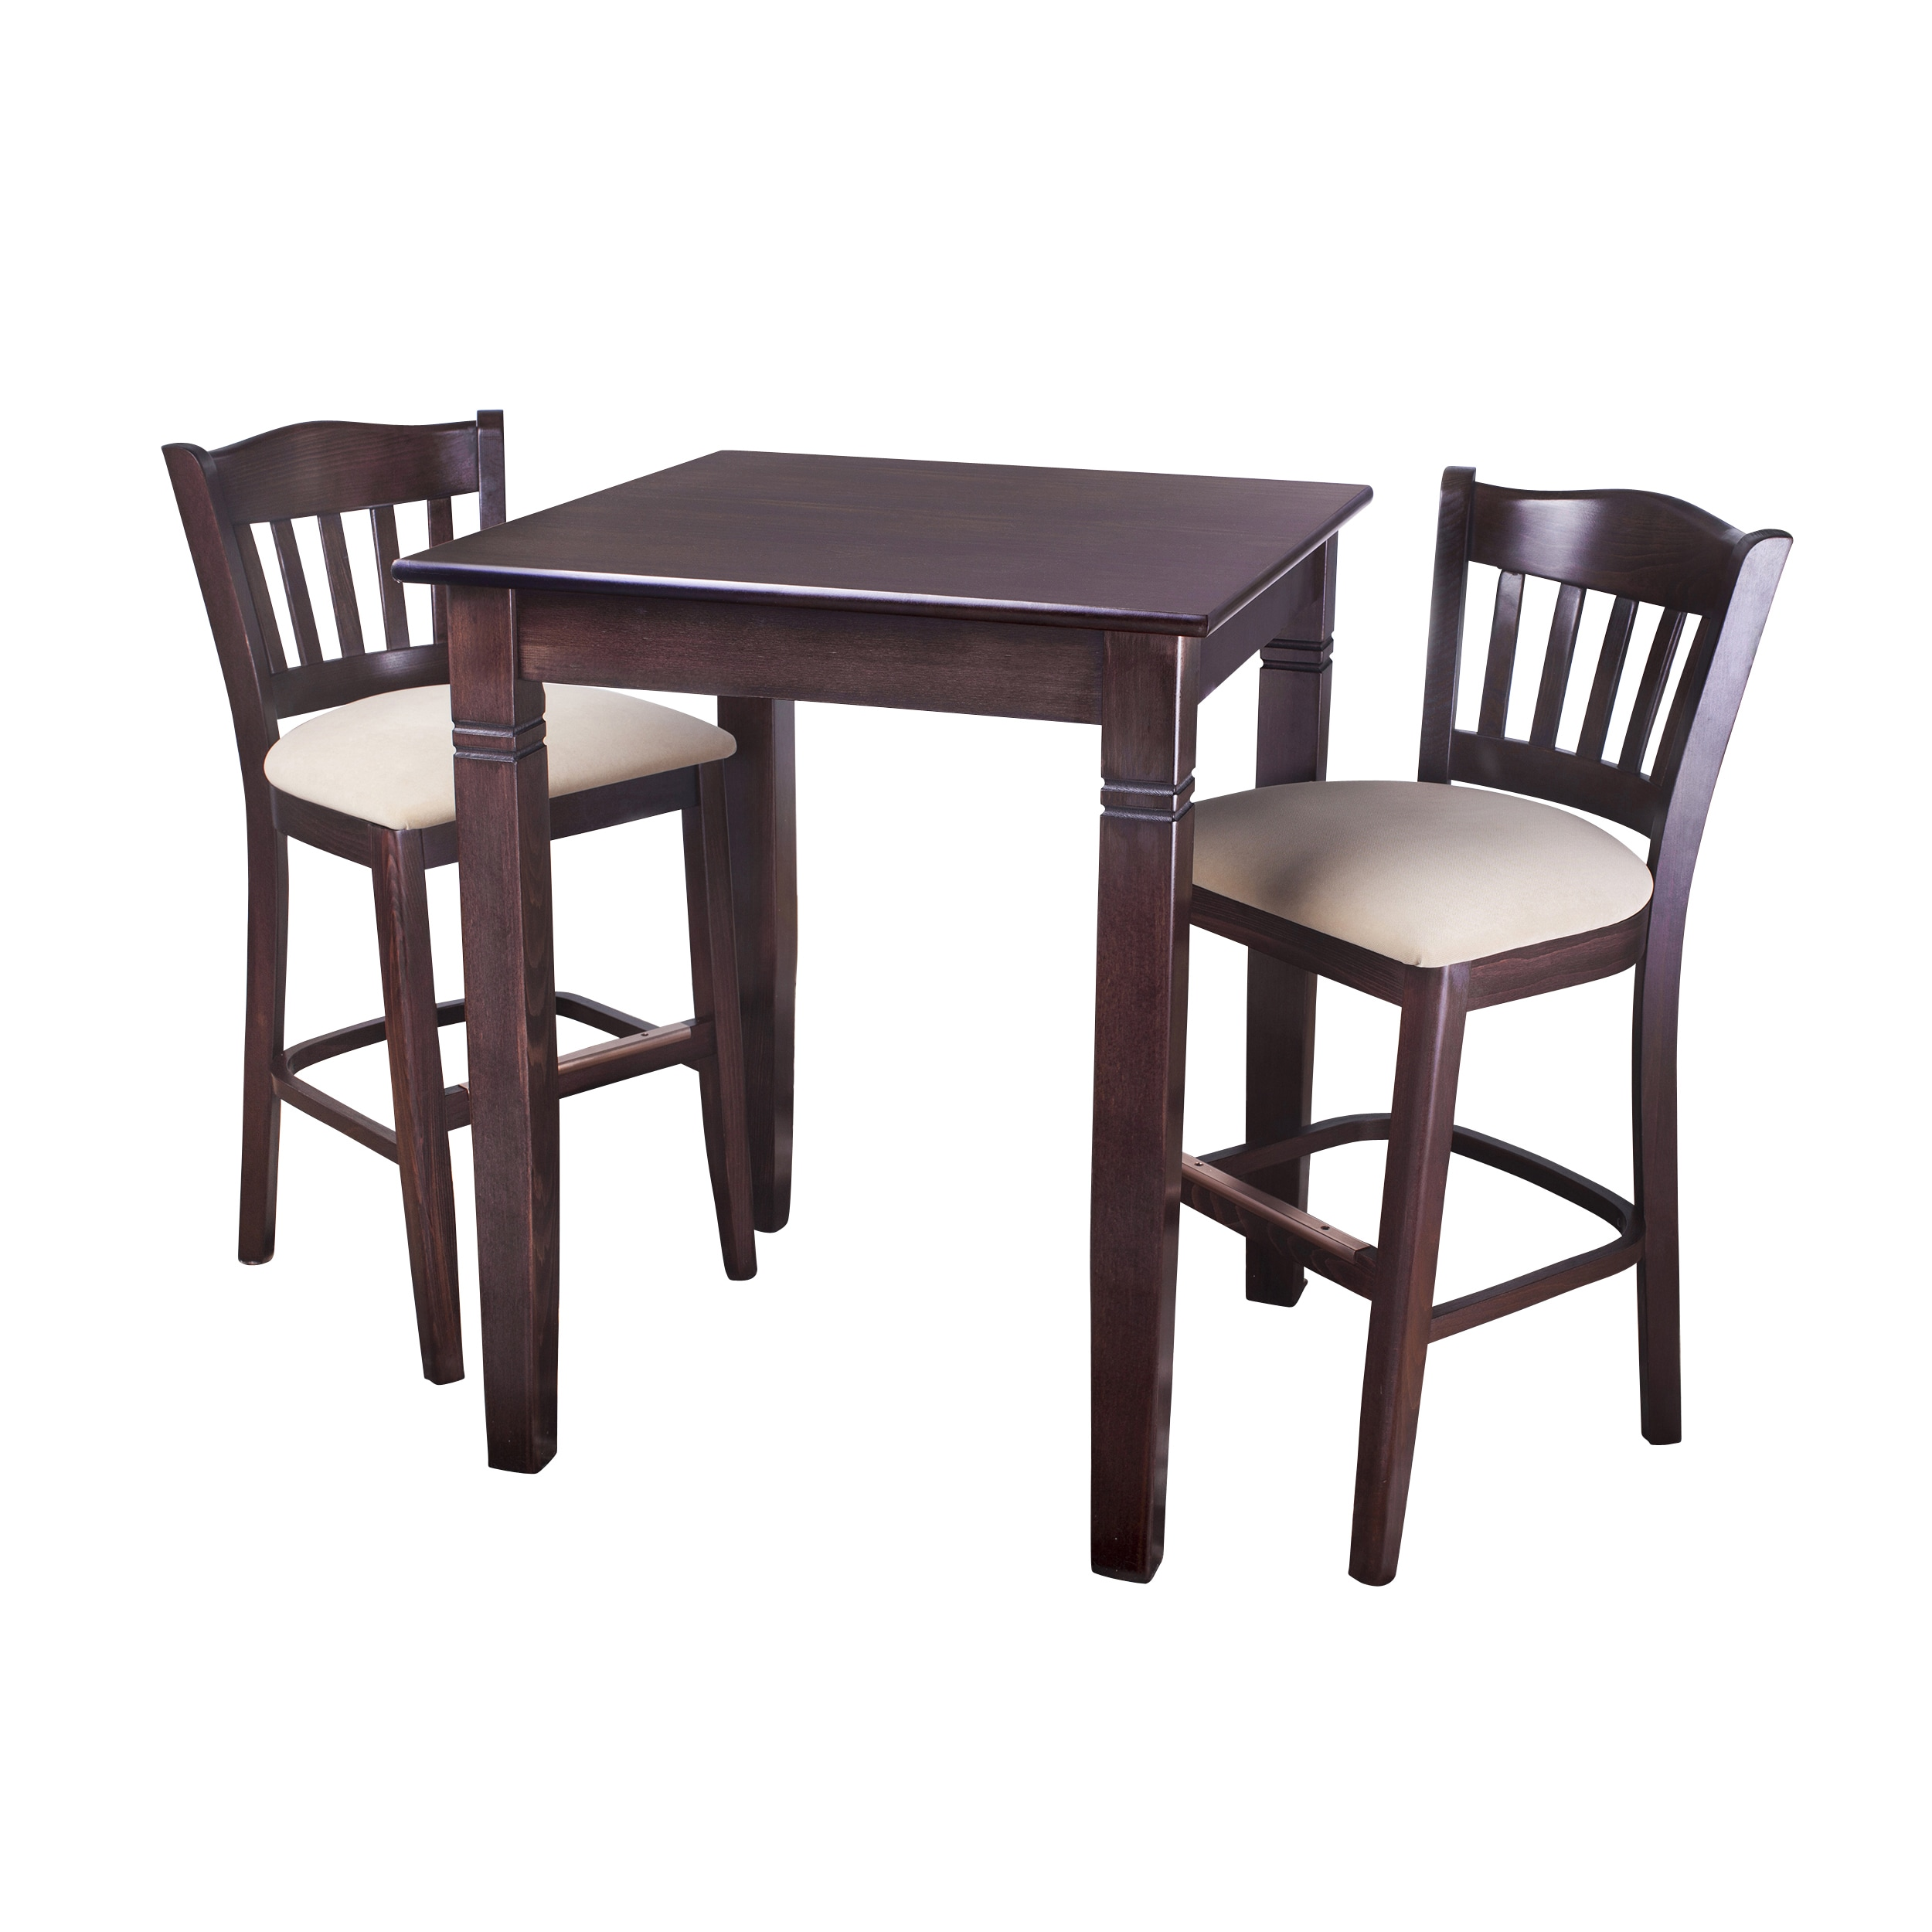 Beechwood Mountain LLC 3-Piece Pub Height Dining Room Set by Overstock